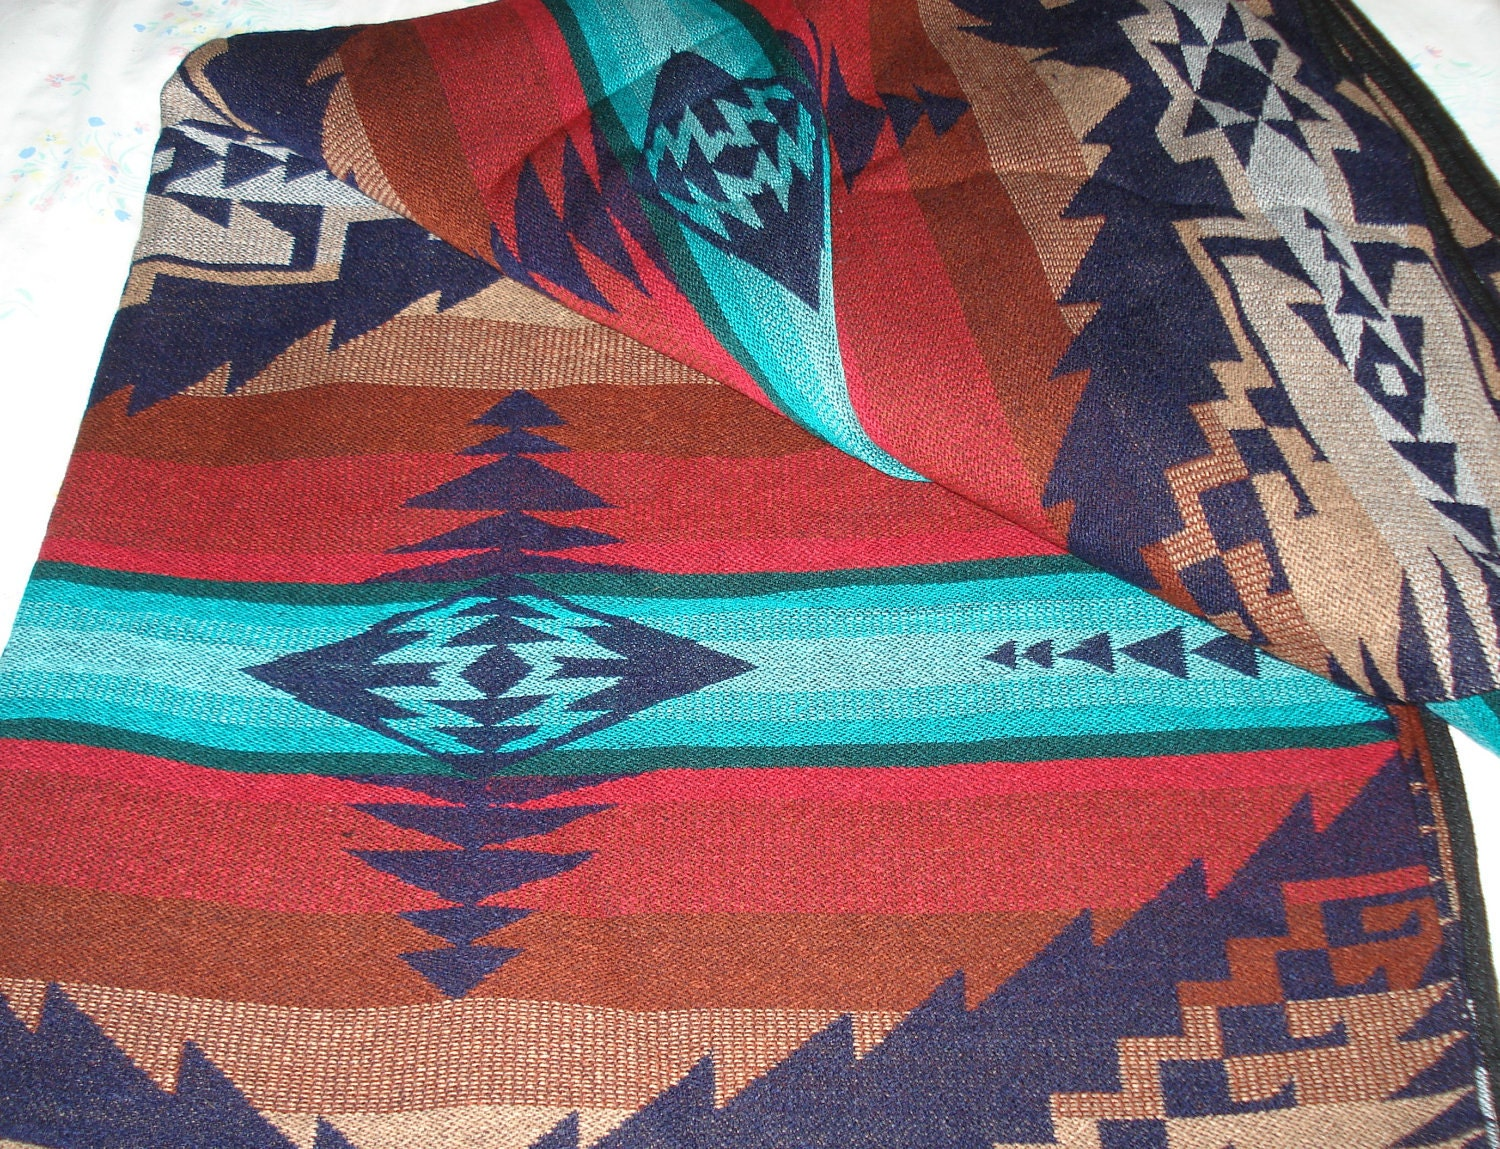 Vintage Native American Inspired Mexican Blanket Throw